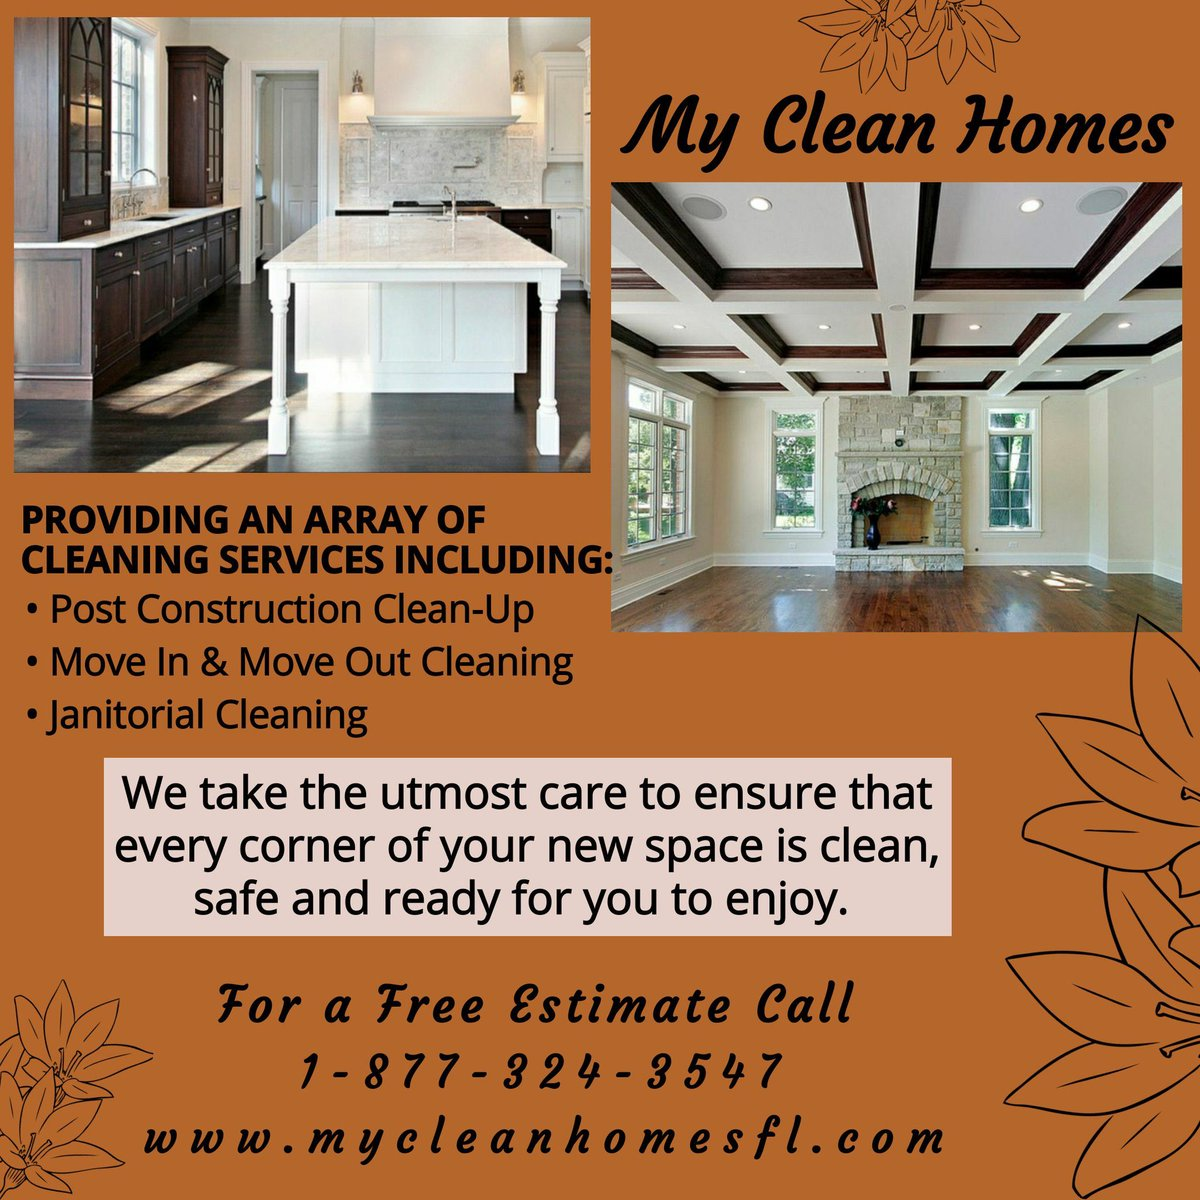 #deepcleaning #office #janitorial #homesweethome #housekeeping #move #housecleaning #browardcounty #realestate #palmbeachcounty #airbnb #vacationhome #homeowner #apartment #rental #lease #office #smallbusiness #springcleaning #bedandbreakfast #maidservice